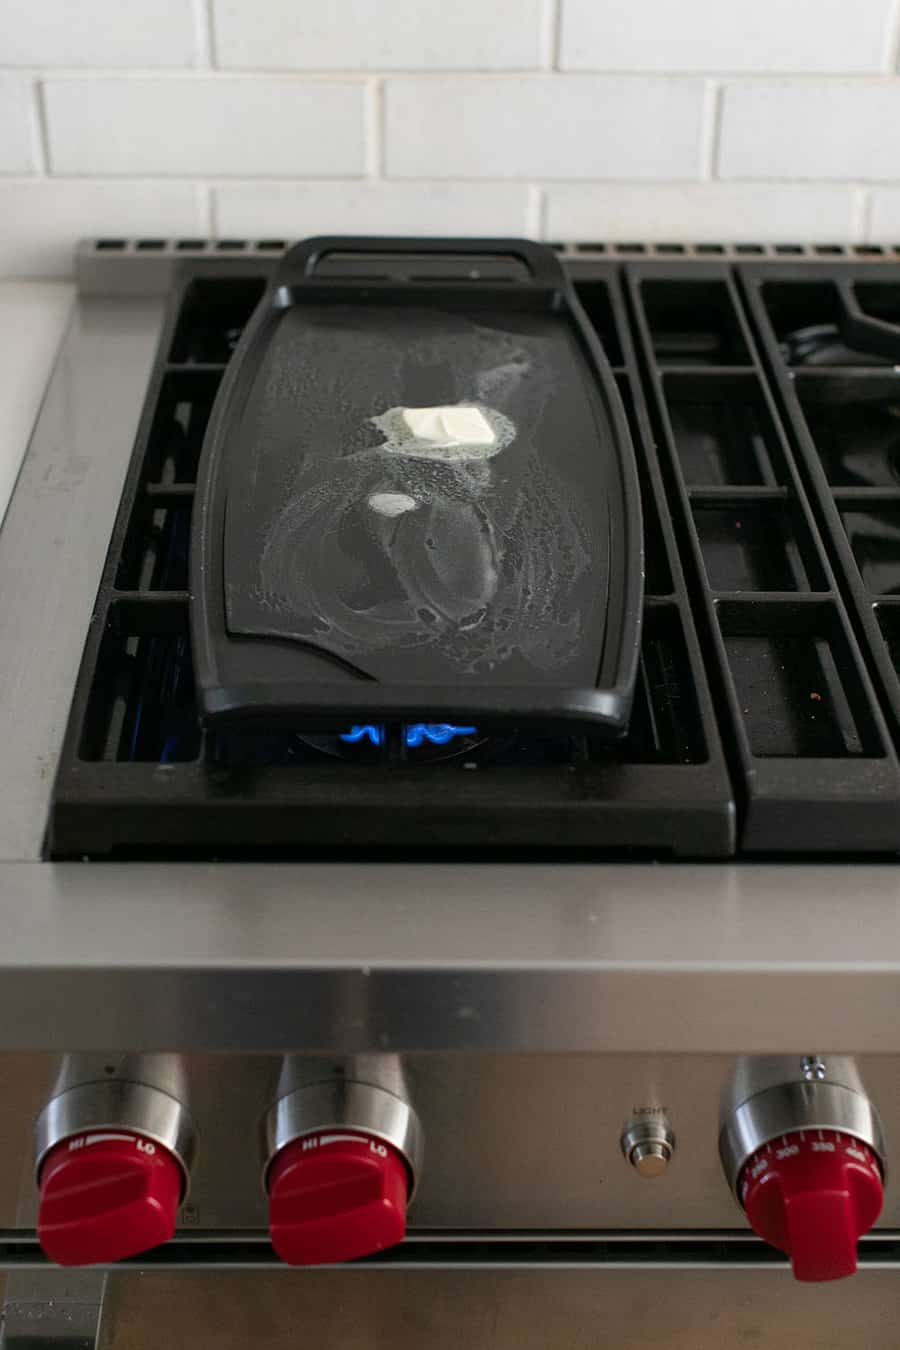 Heating a griddle on the stove top